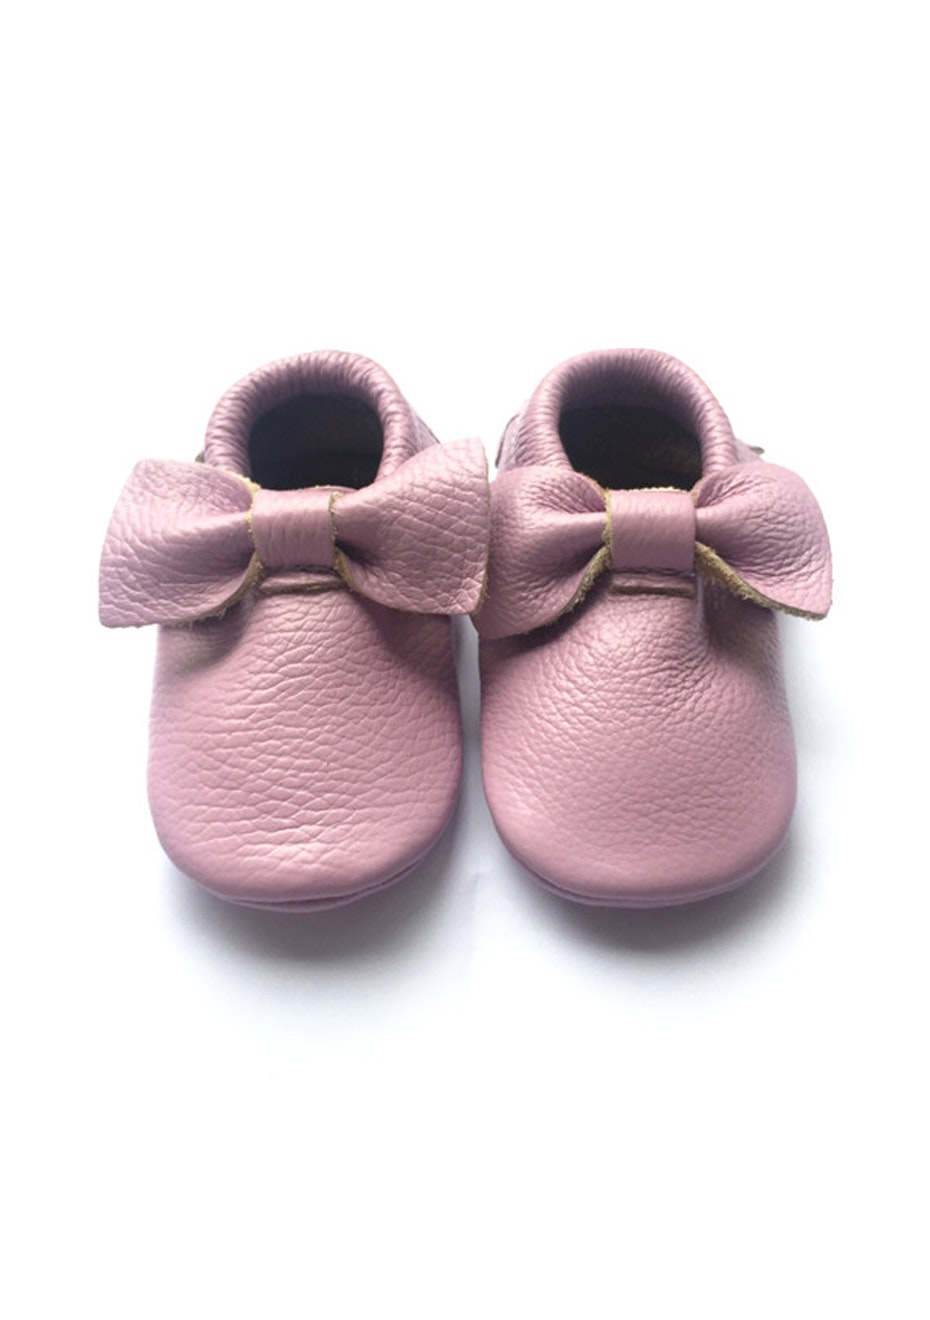 Baby  Leather Shoes - Lavendar